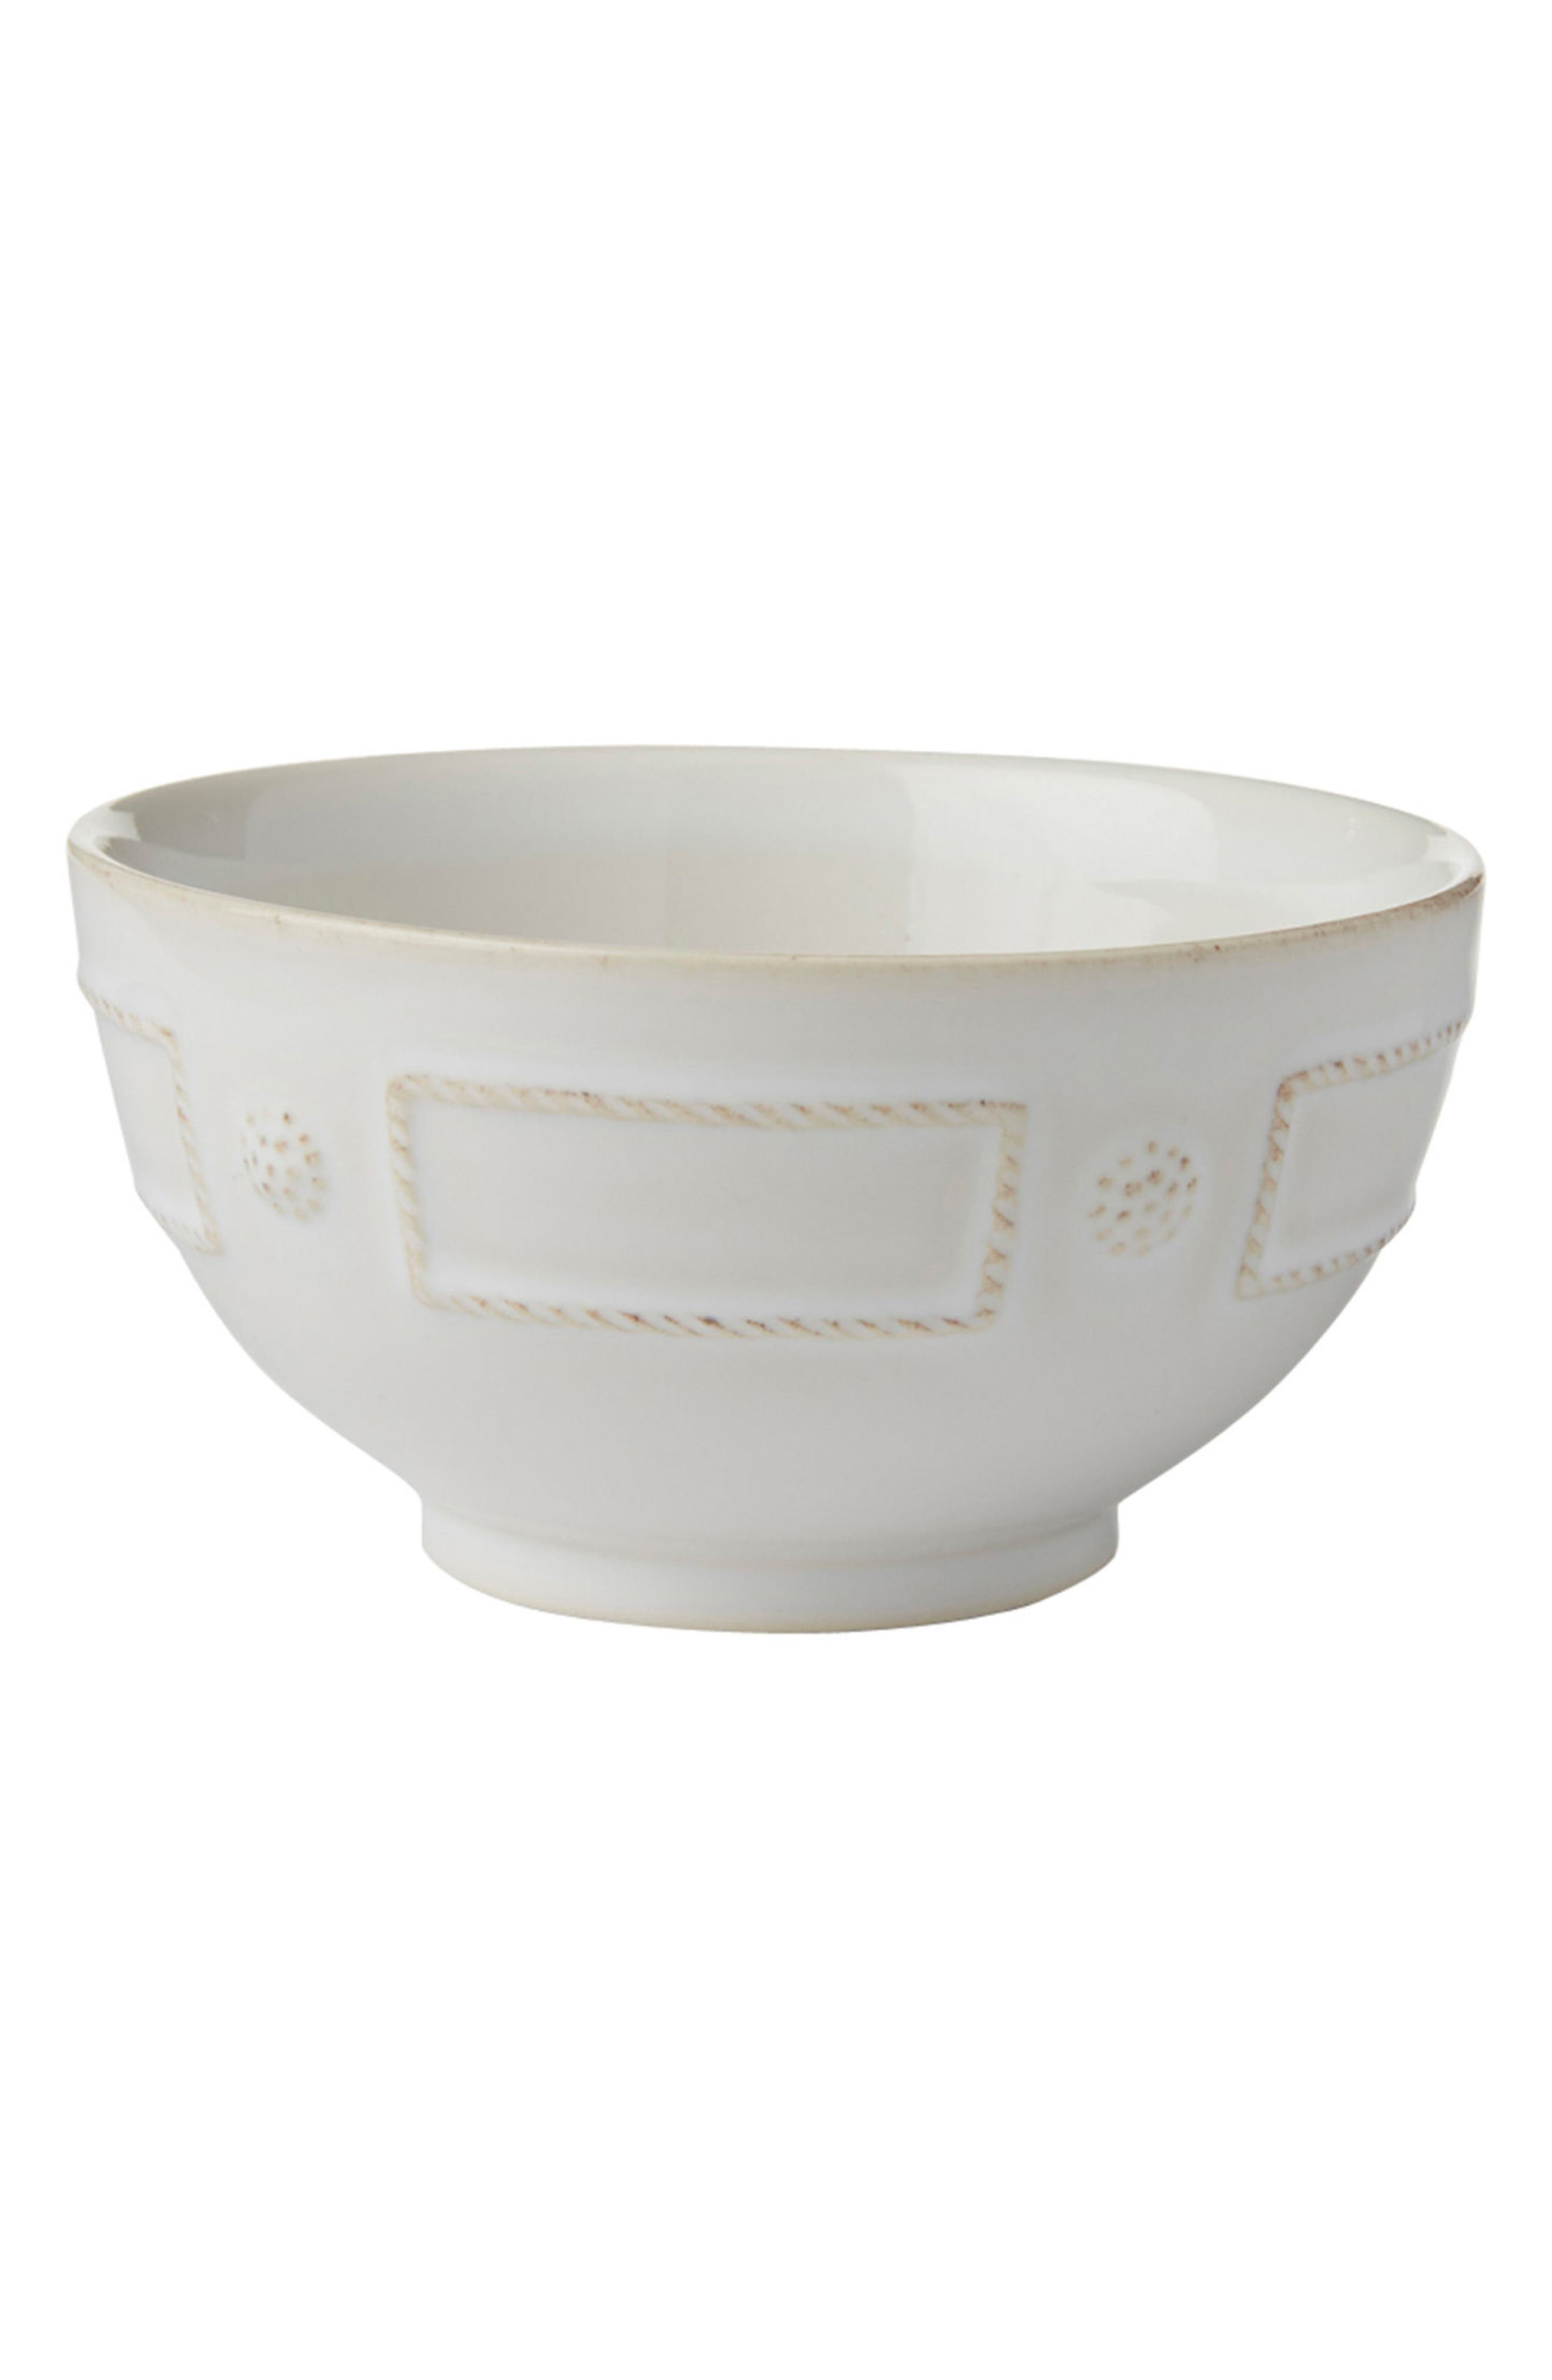 Berry & Thread French Panel Ceramic Cereal Bowl,                         Main,                         color, Whitewash